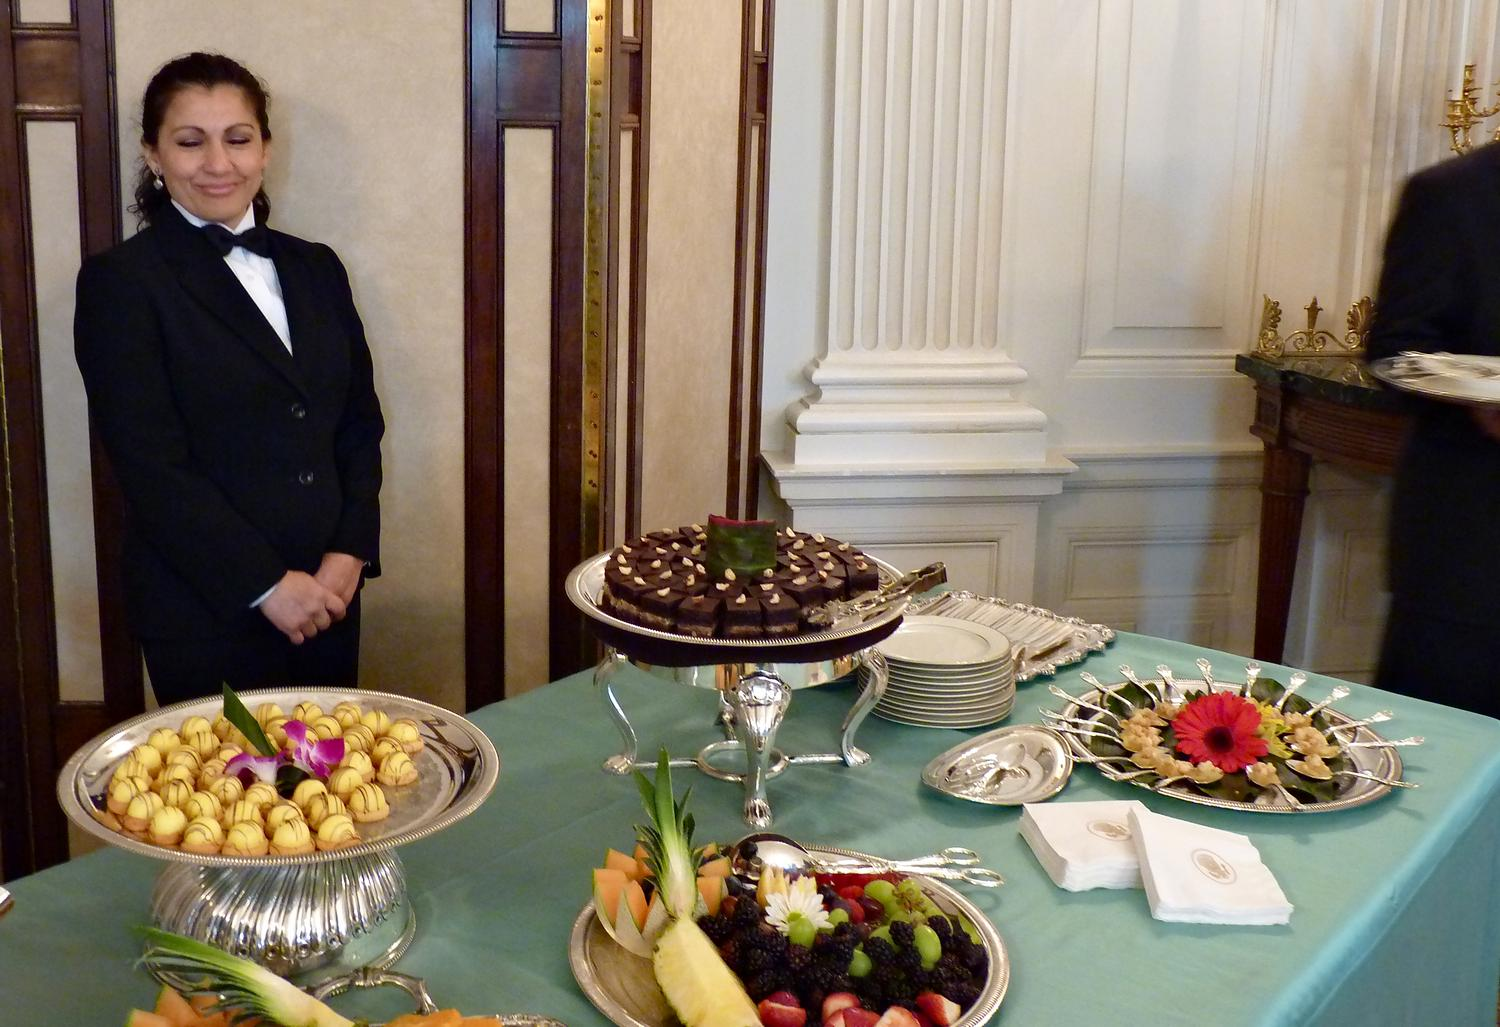 - This young lady is quite proud of the fancy sweets served at the White House. - Panasonic DMC-FZ35 - White House = President Barak Obama - Tony Karp, design, art, photography, techno-impressionist, techno-impressionism, aerial photography , drone , drones , dji , mavic pro , video , 3D printing - Books -